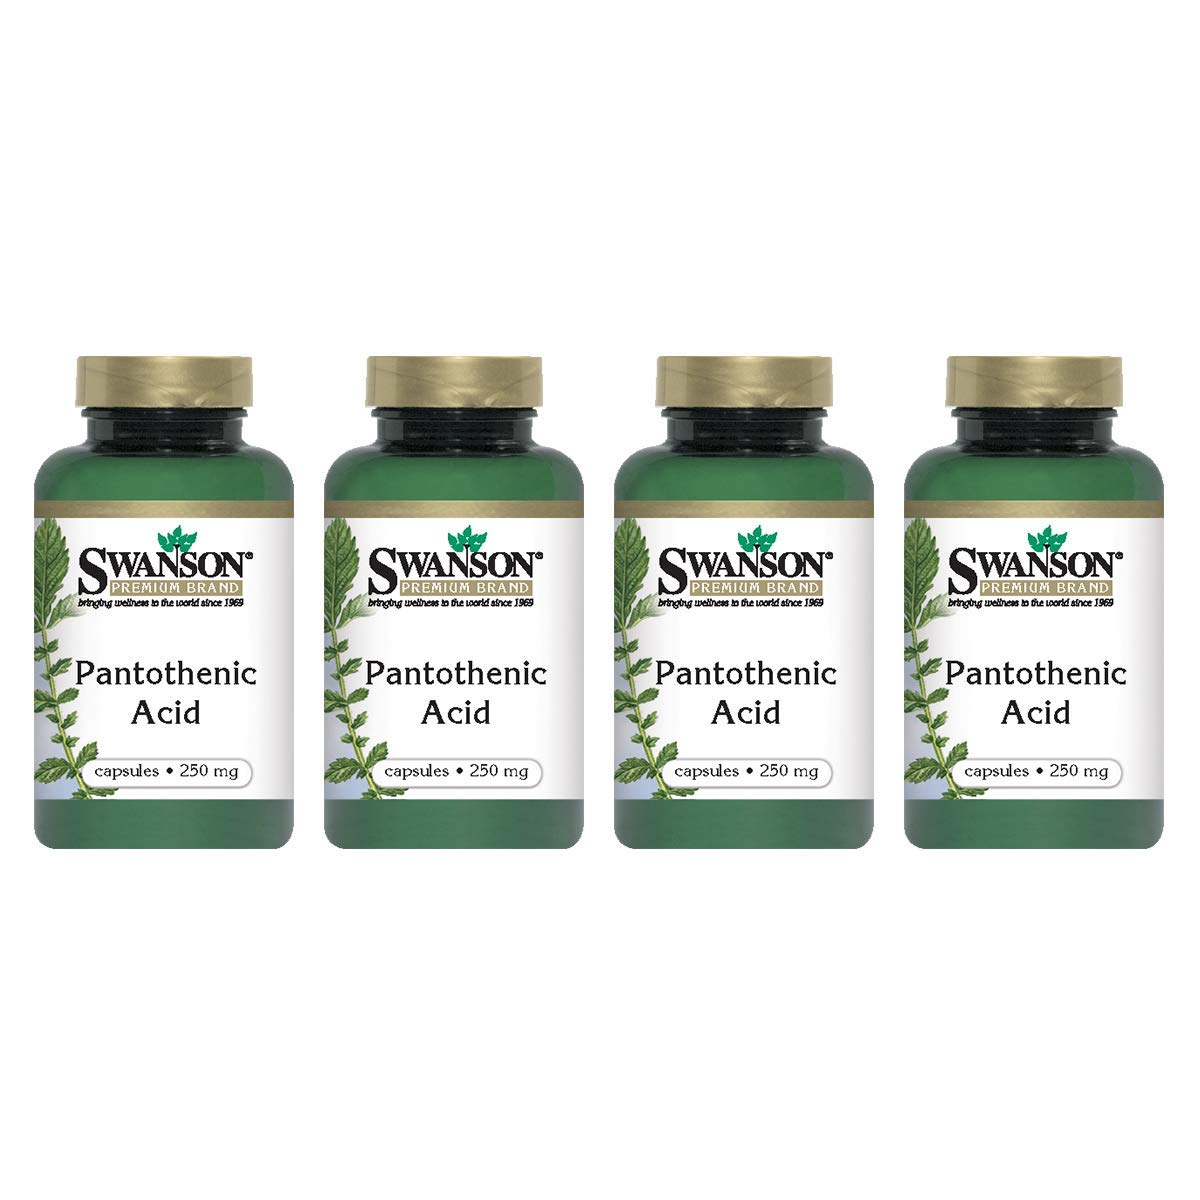 Swanson Pantothenic Acid (Vitamin B-5) Energy Metabolism Nerve Function Support 250 mg 250 Capsules (Caps) (4 Pack) by Swanson